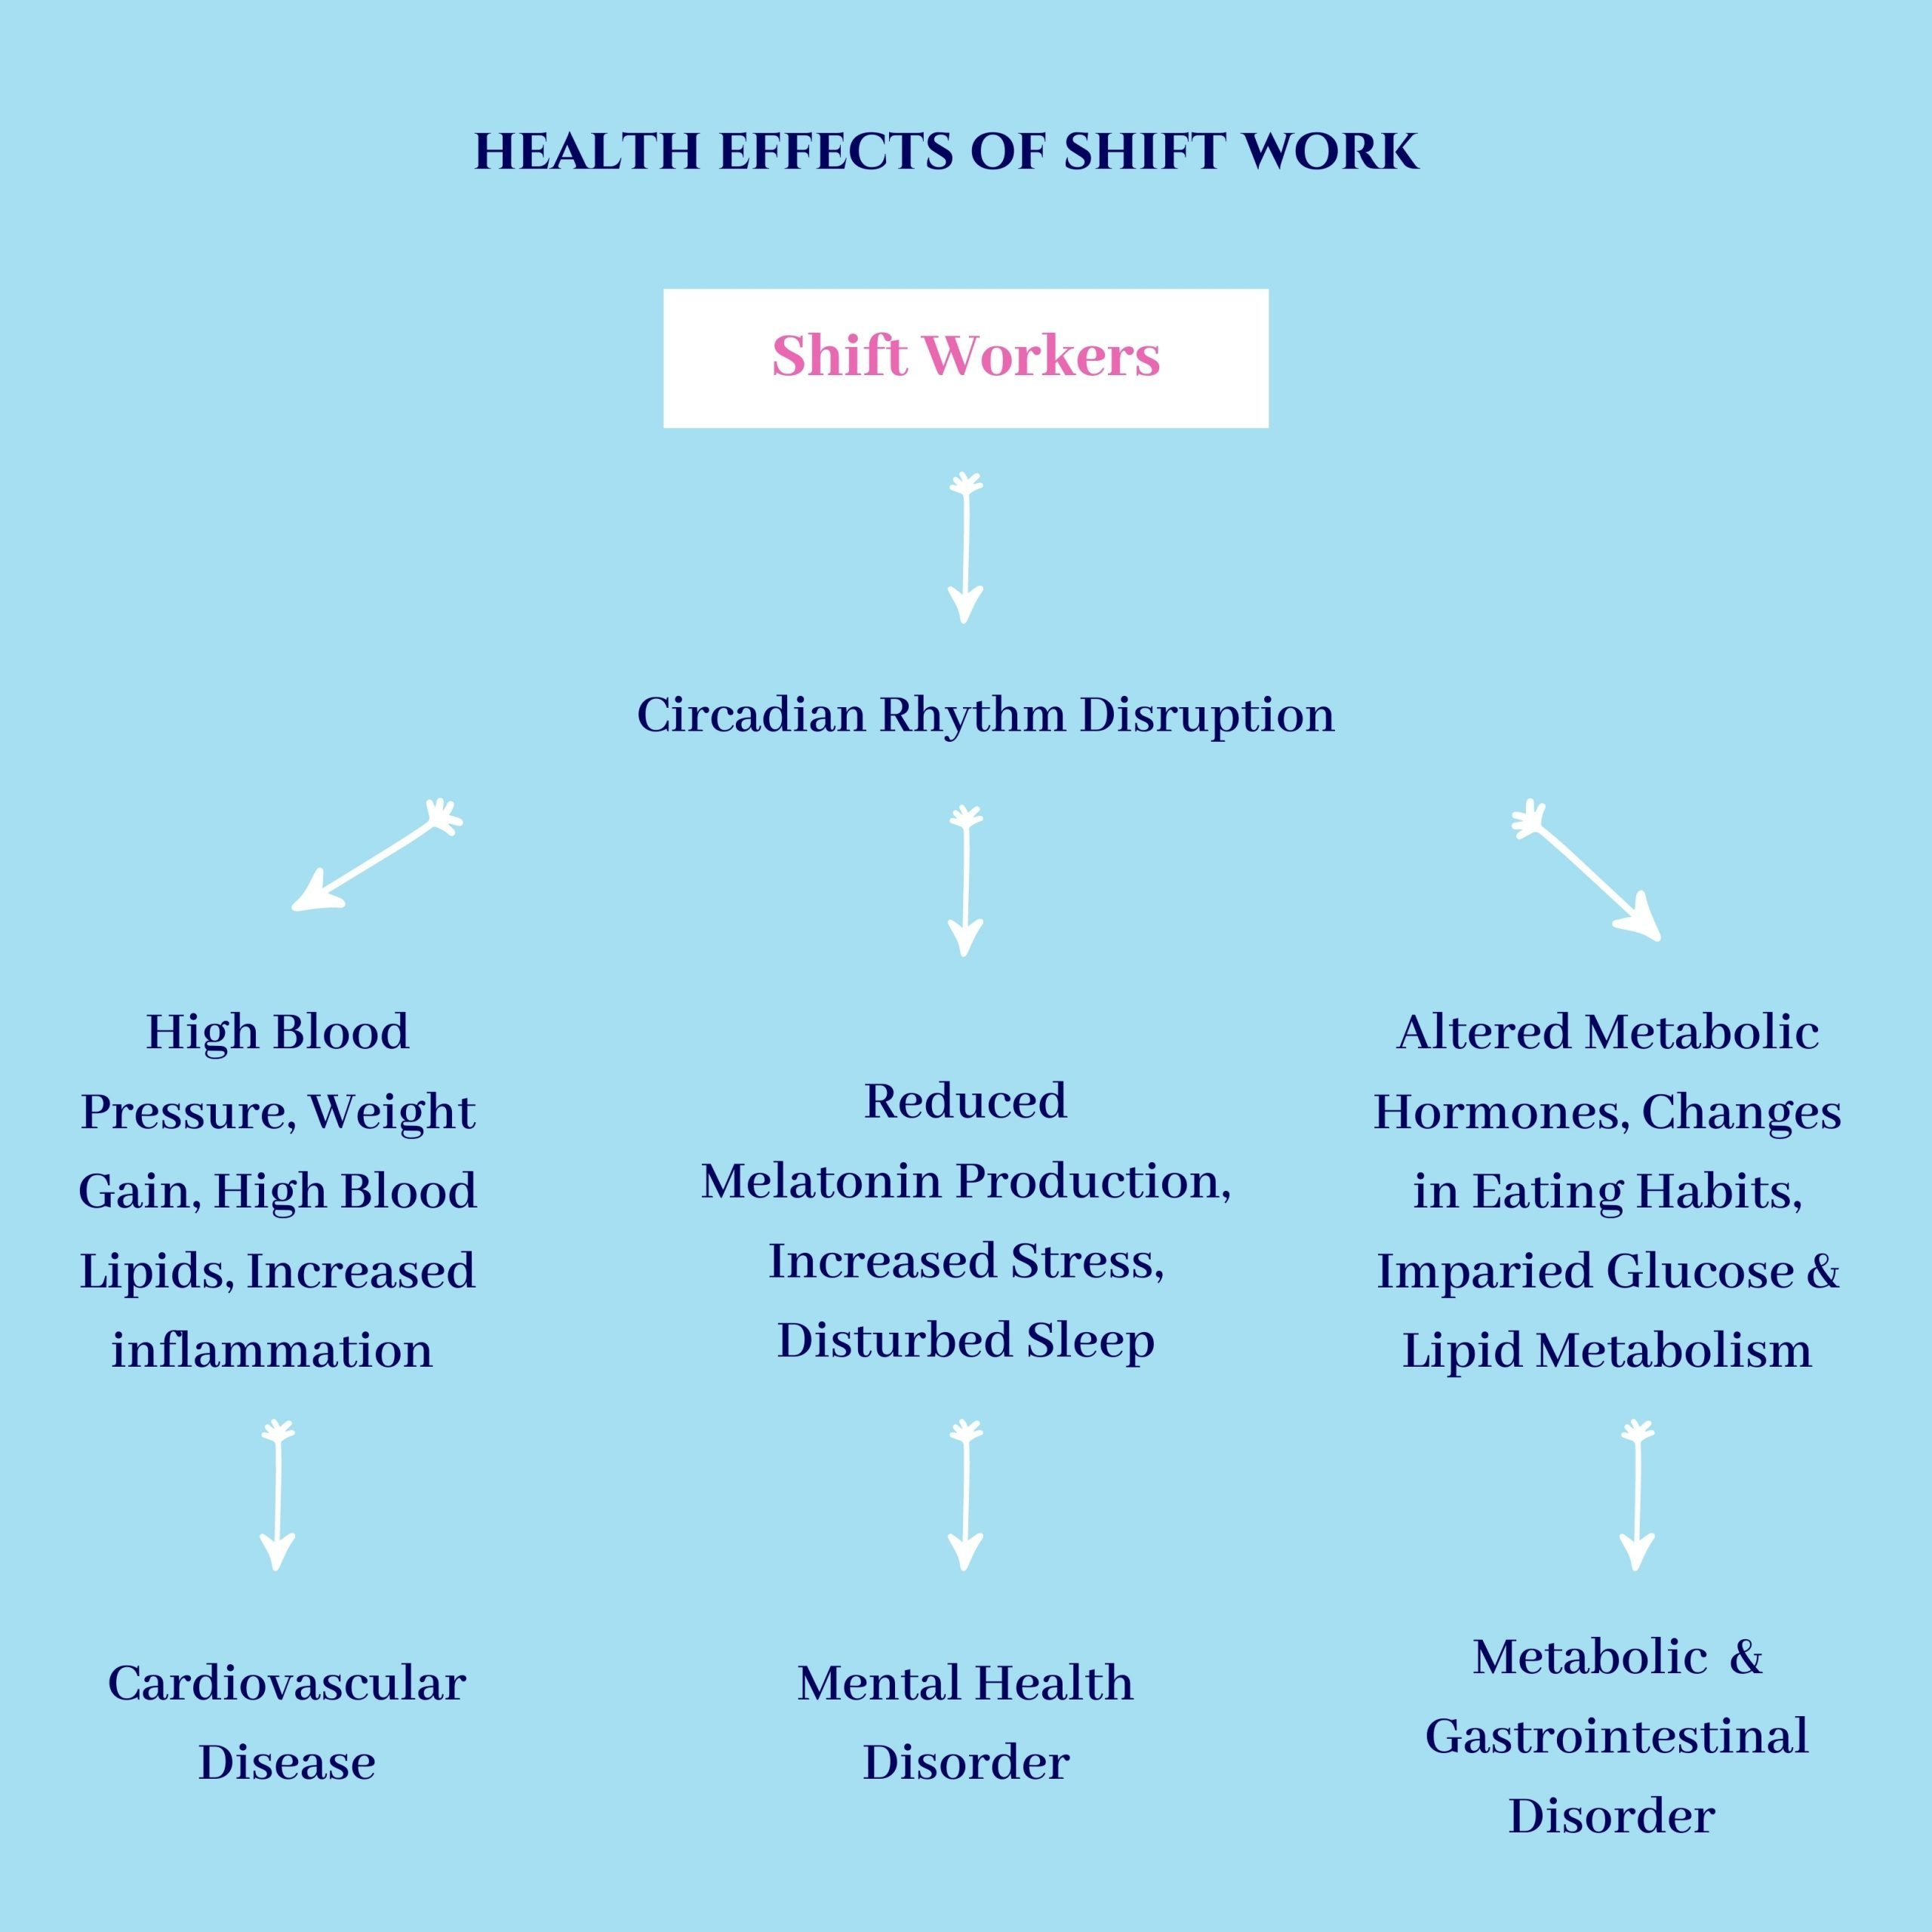 flow chart of the effects of shift work on health